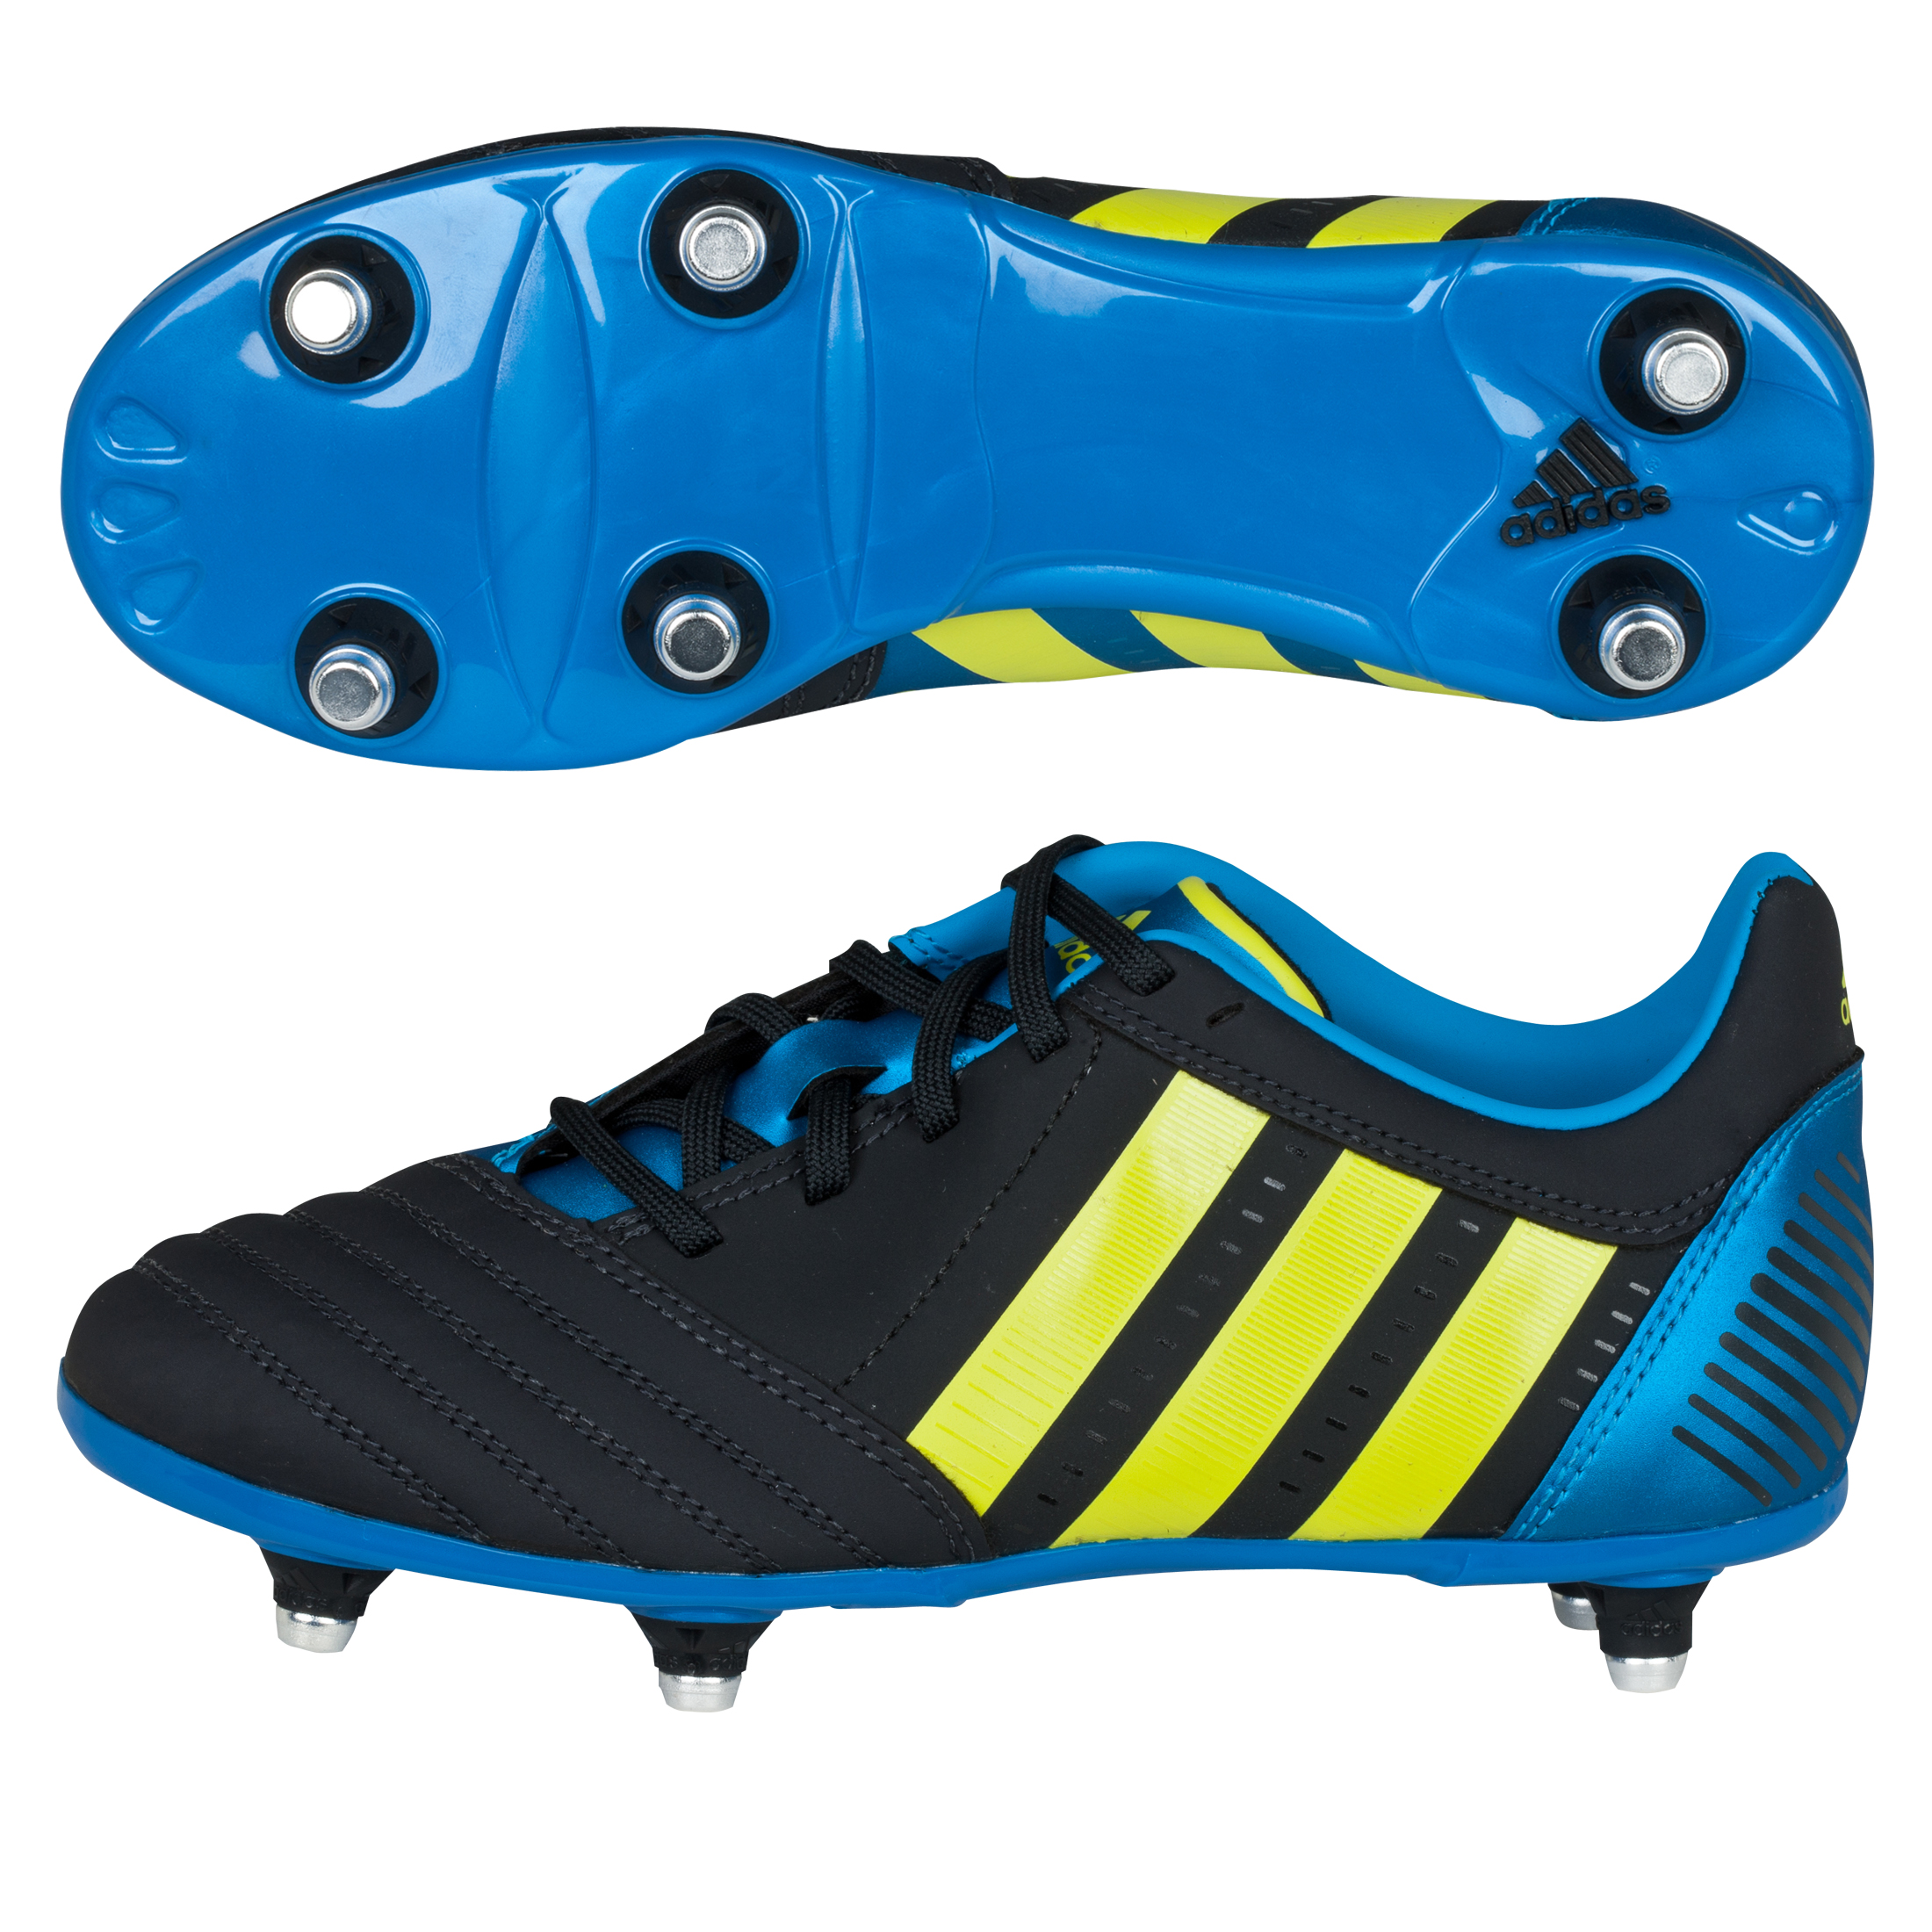 Adidas Absolado RXV TRX Soft Ground Rugby Boots - Punjab/Lab Lime/Bright Blue - Kids